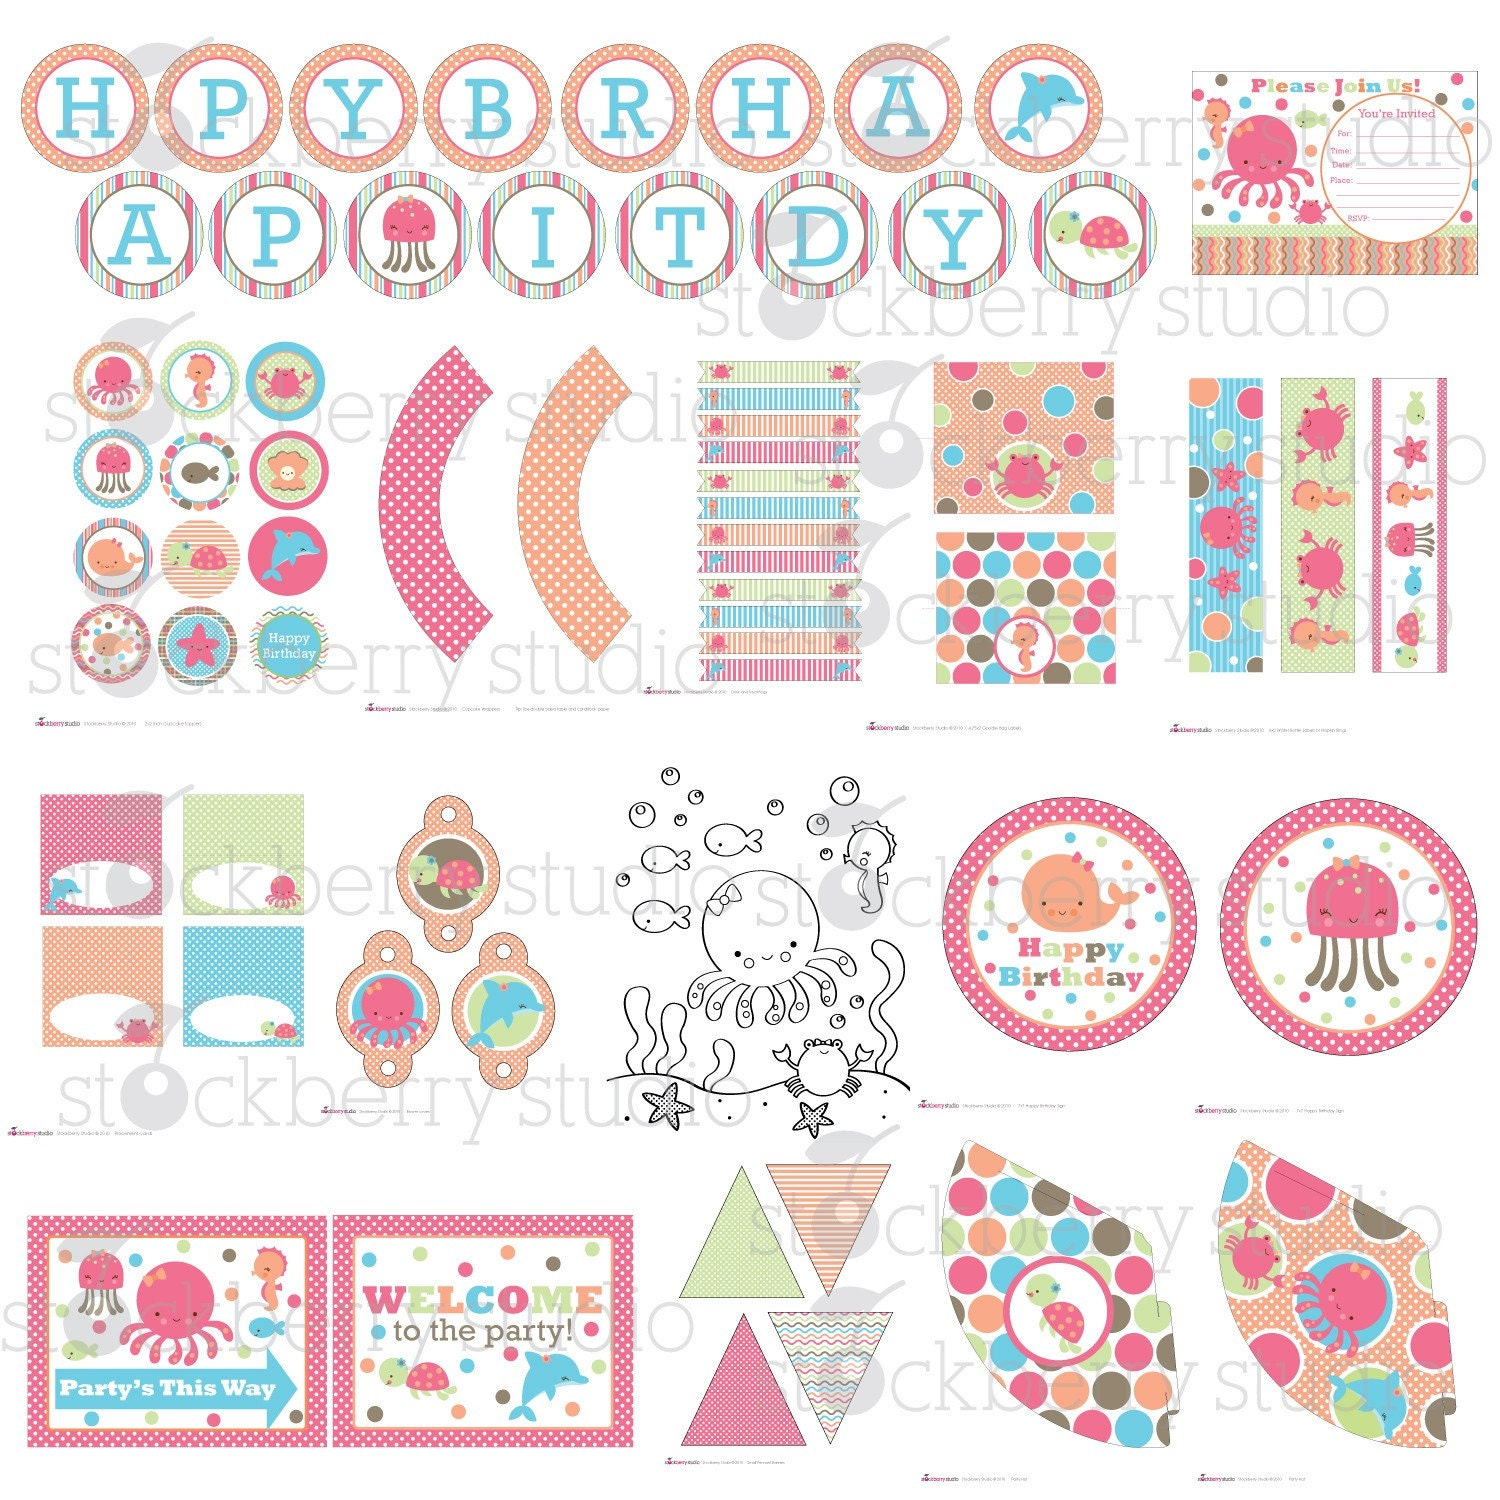 Girl under the sea printable party kit by stockberrystudio for Baby shower decoration kit